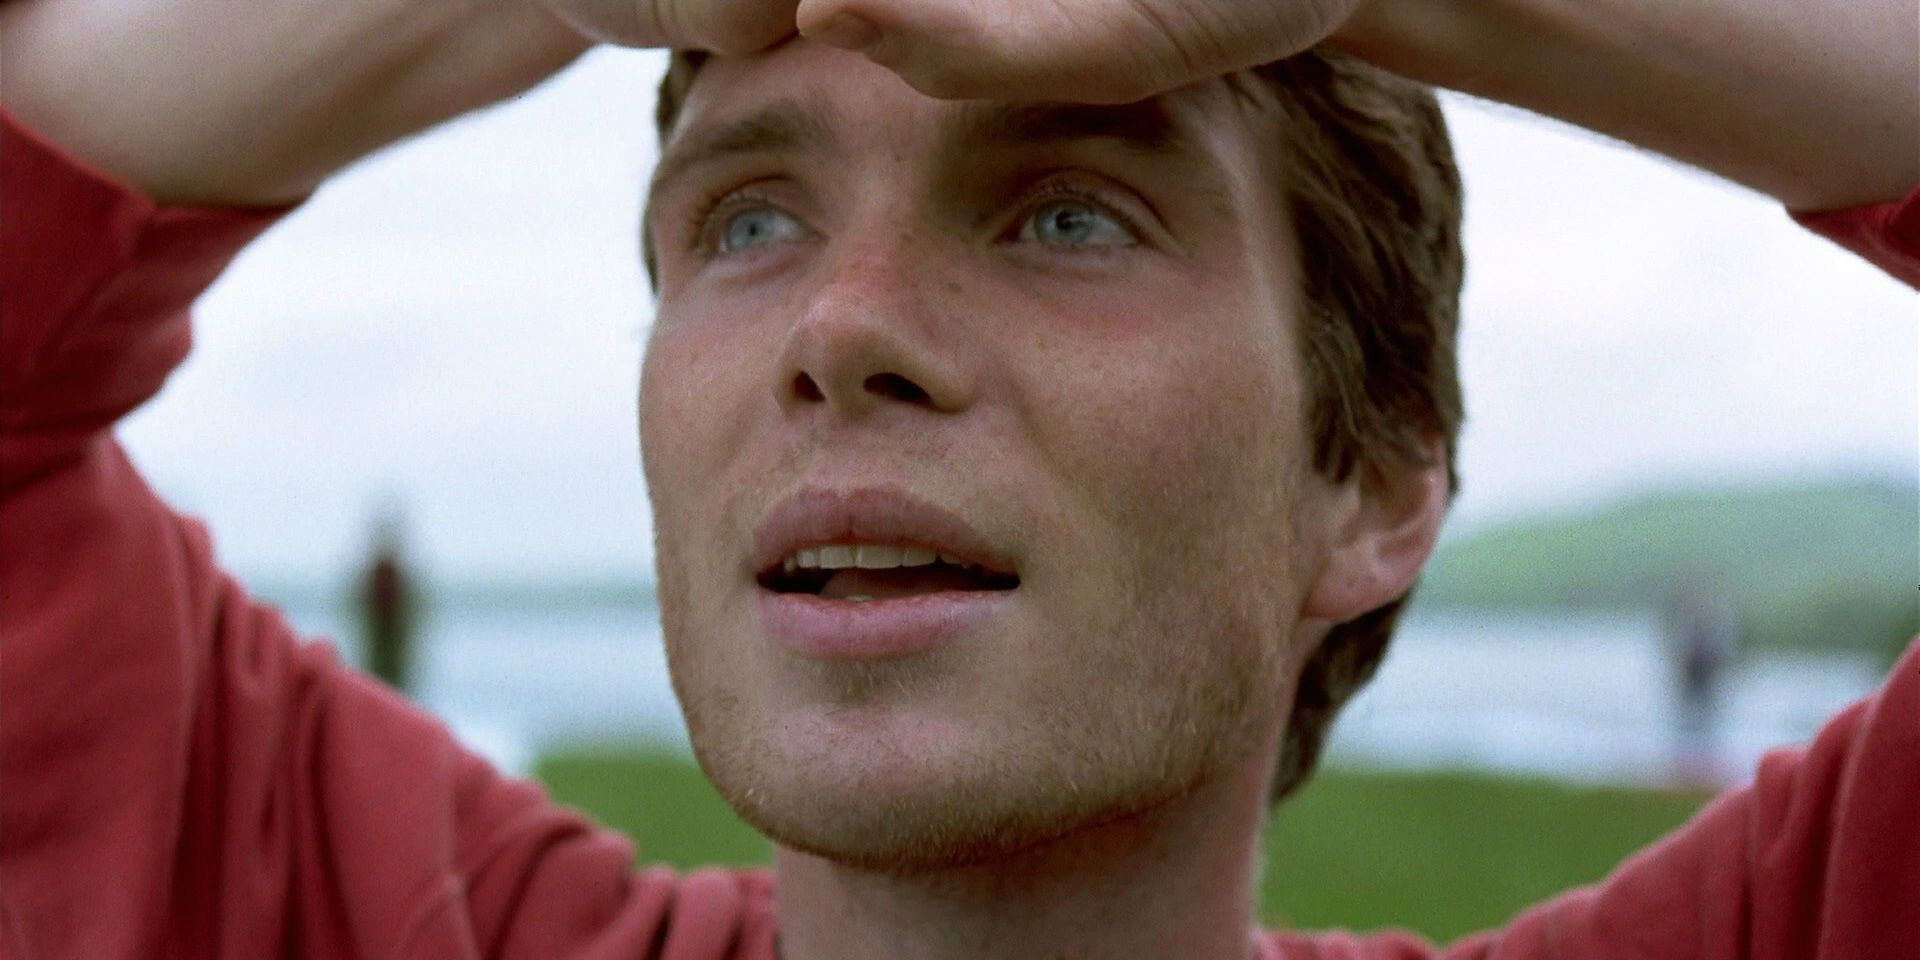 28 Days Later: What Happened to Cillian Murphy's Character